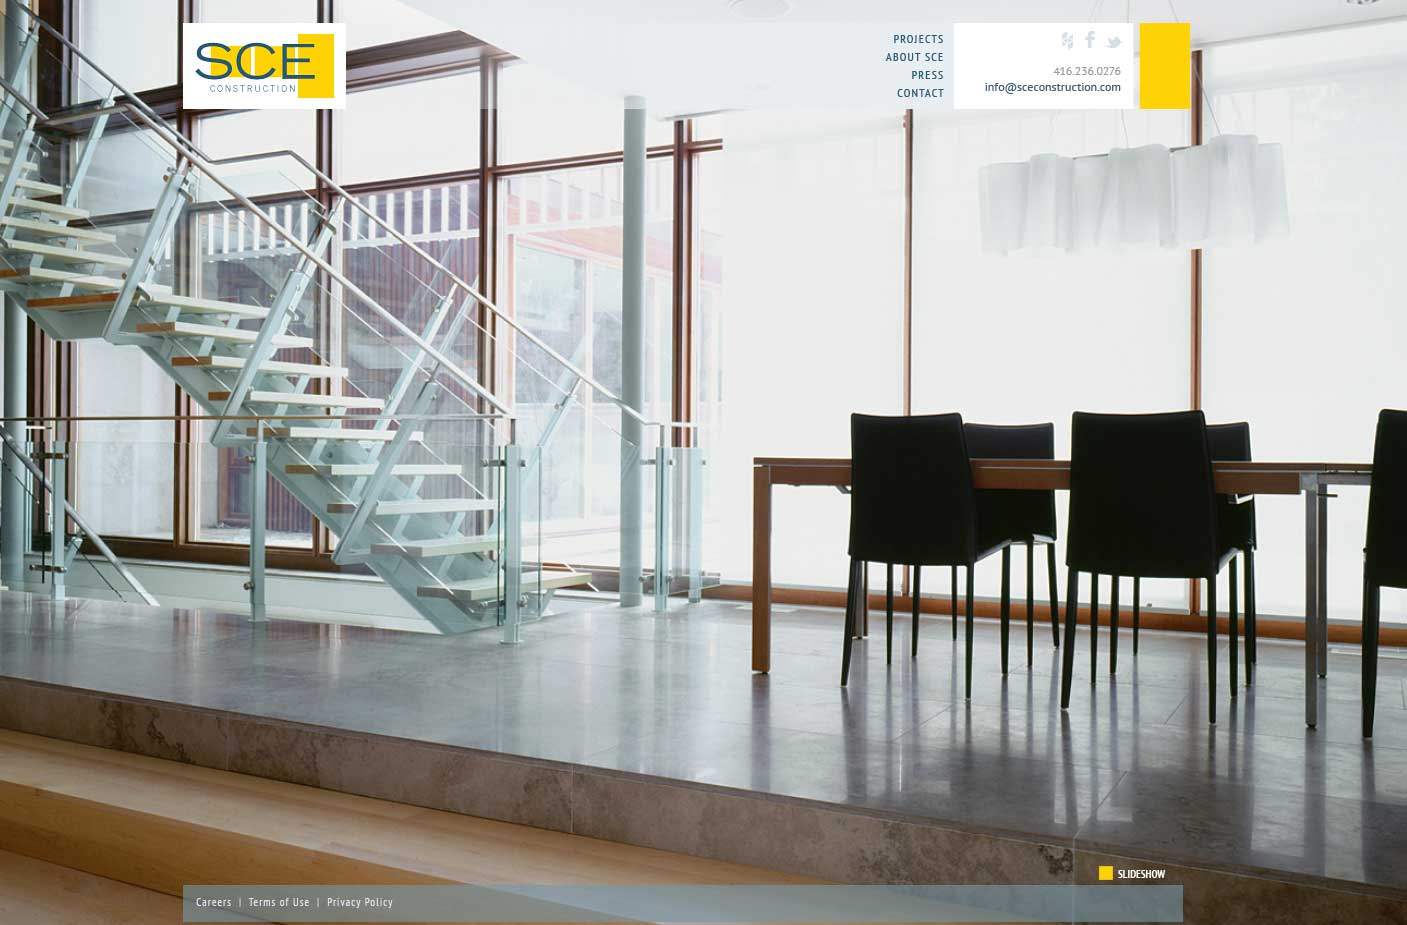 SCE Construction Online Portfolio Website